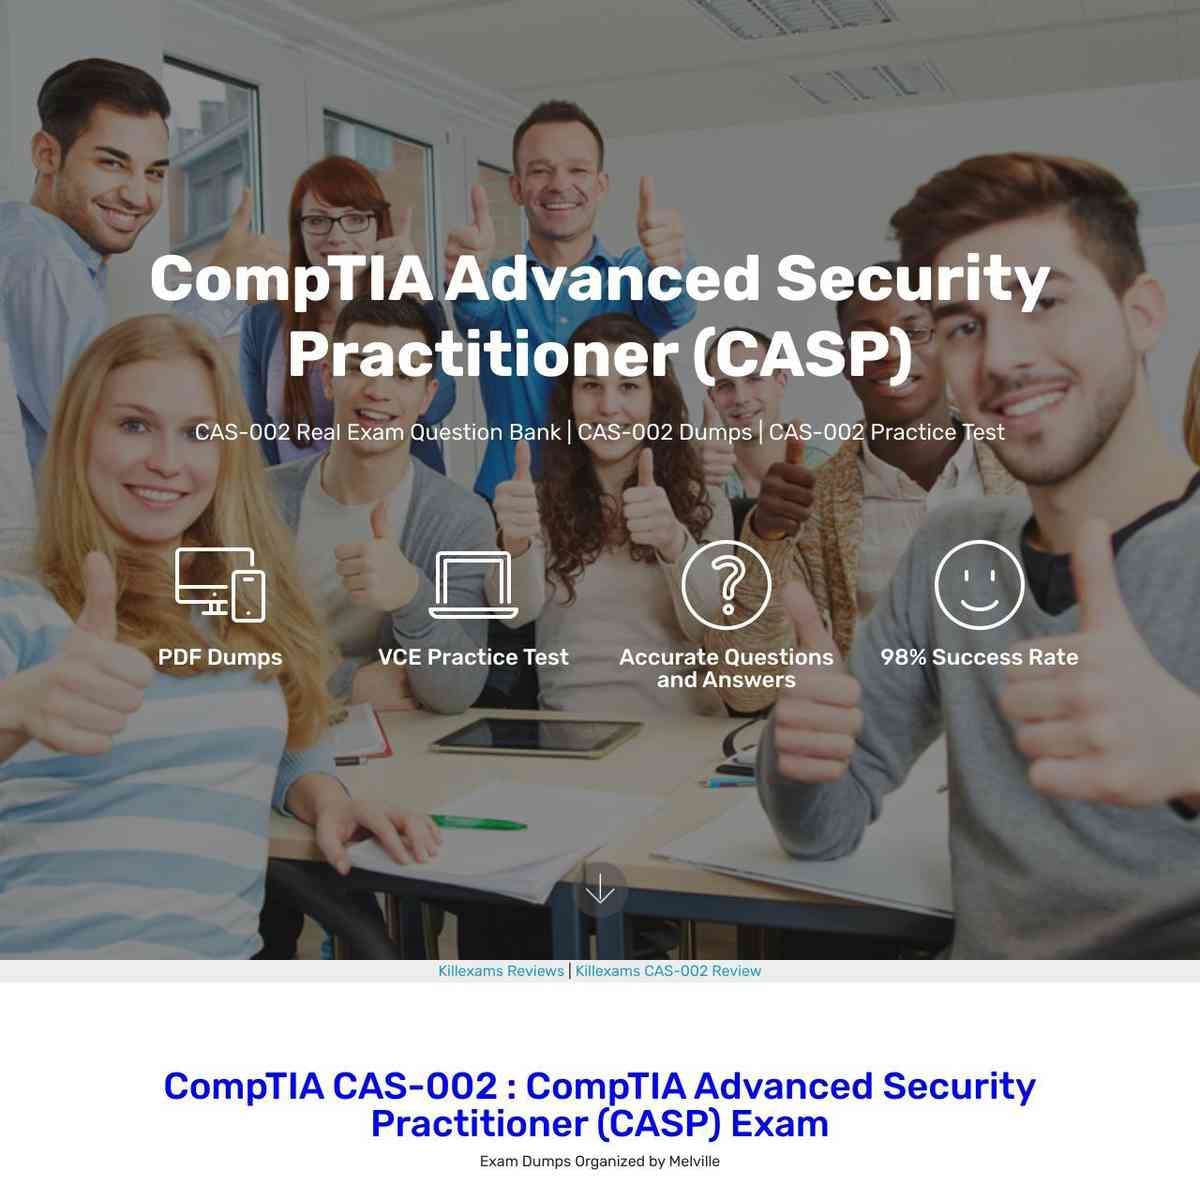 Don't Miss these free CAS-002 PDF Download to practice